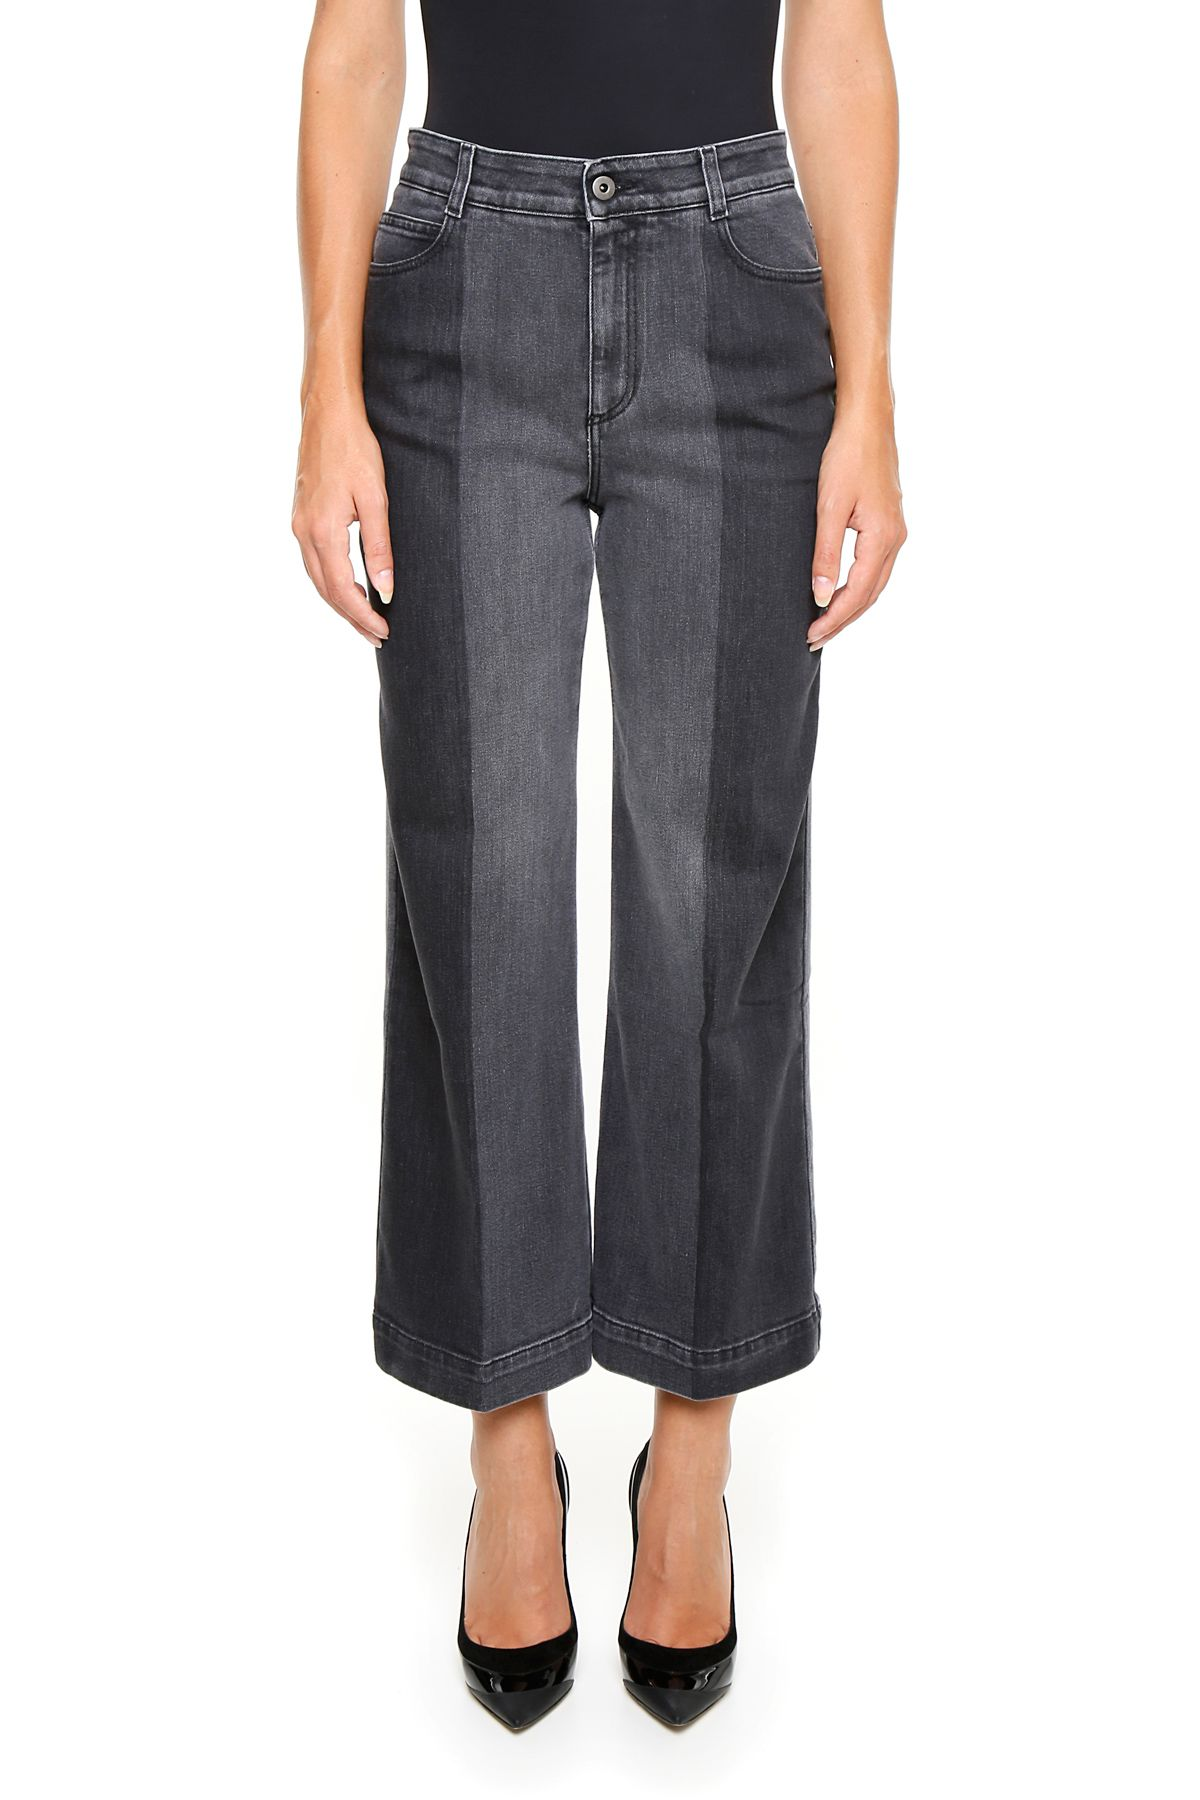 Stella McCartney Bicolor Faded Jeans